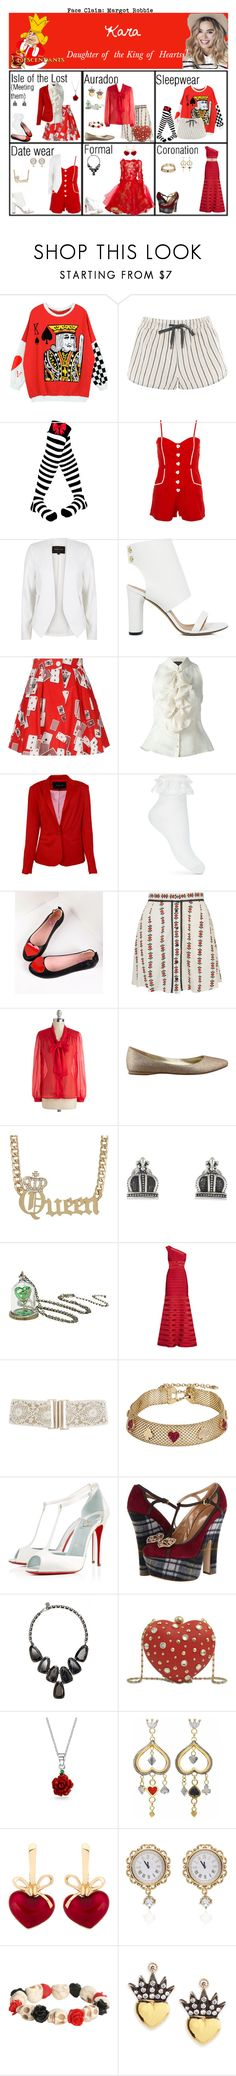 """""""Kara. Daughter of the King of Hearts"""" by elmoakepoke ❤ liked on Polyvore featuring Disney, Topshop, River Island, IRO, Olympia Le-Tan, Luisa Spagnoli, Miss Selfridge, Motel, Nine West and King Baby Studio"""